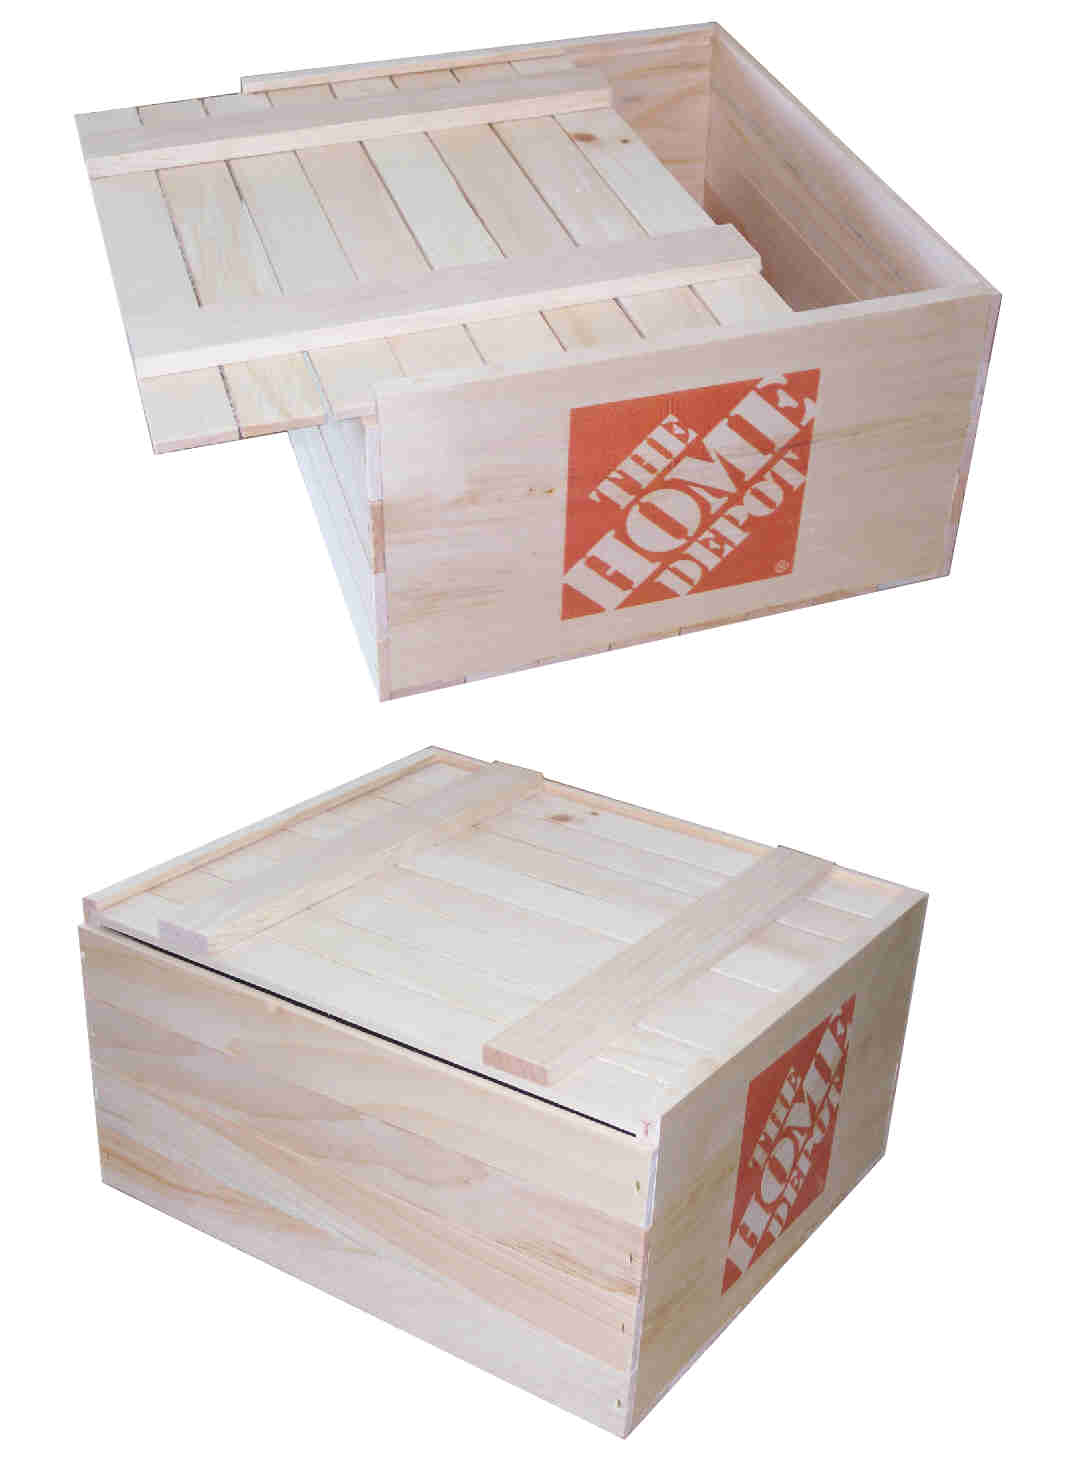 pine crates like this are an inexpensive alternitive to the old woven basket